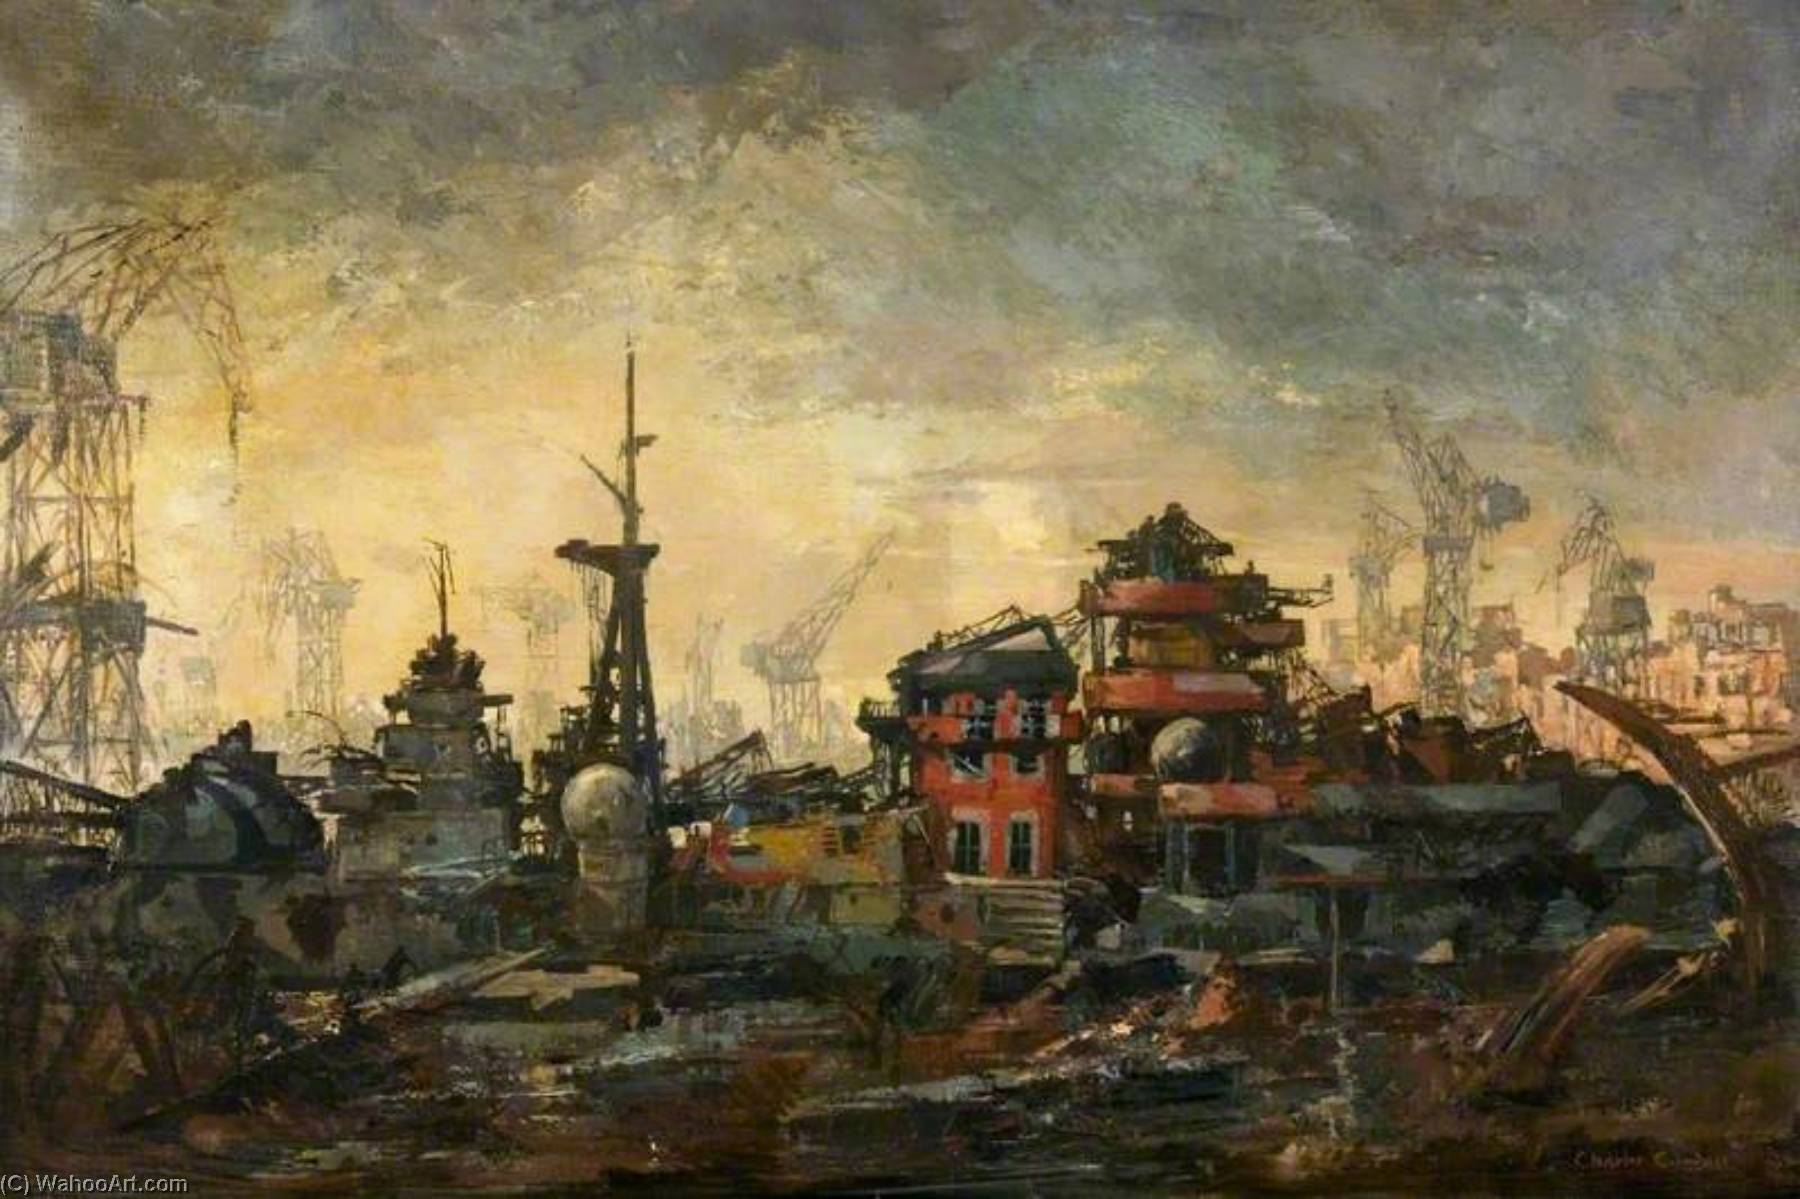 The Hipper at Kiel, 1945 by Charles Ernest Cundall | Oil Painting | WahooArt.com